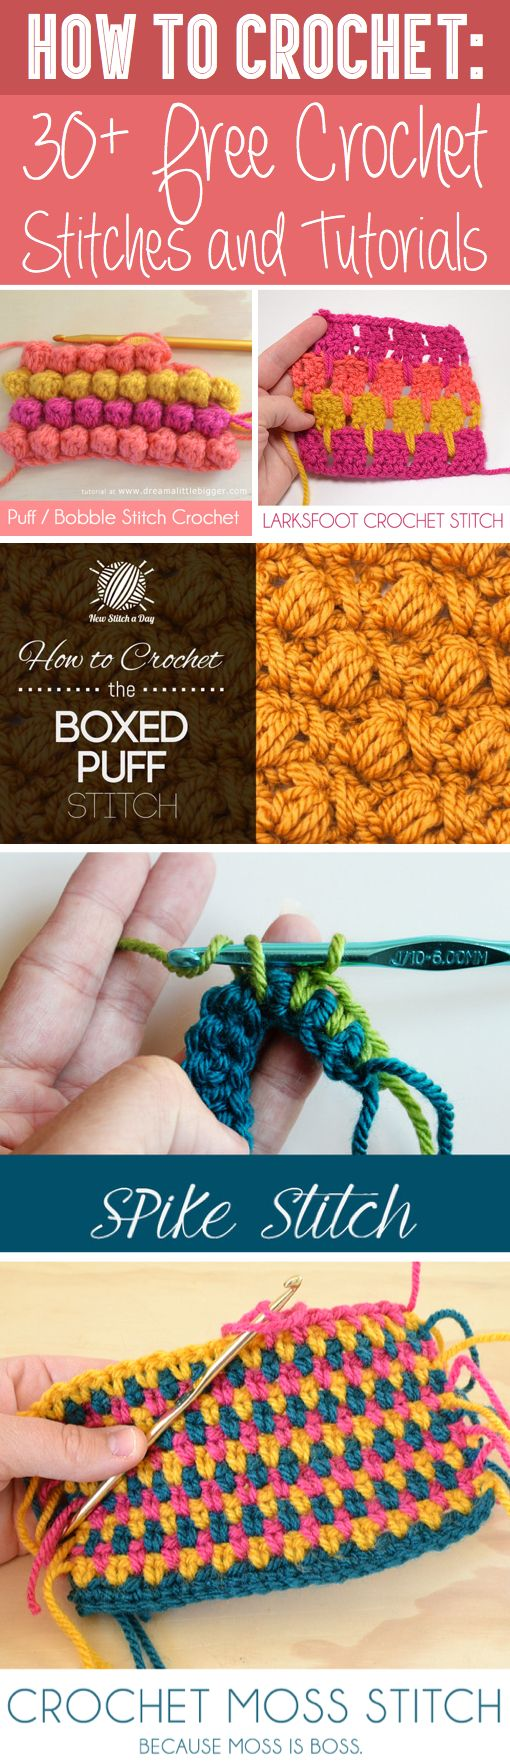 How To Crochet: 30+ Free Crochet Stitches and Tutorials